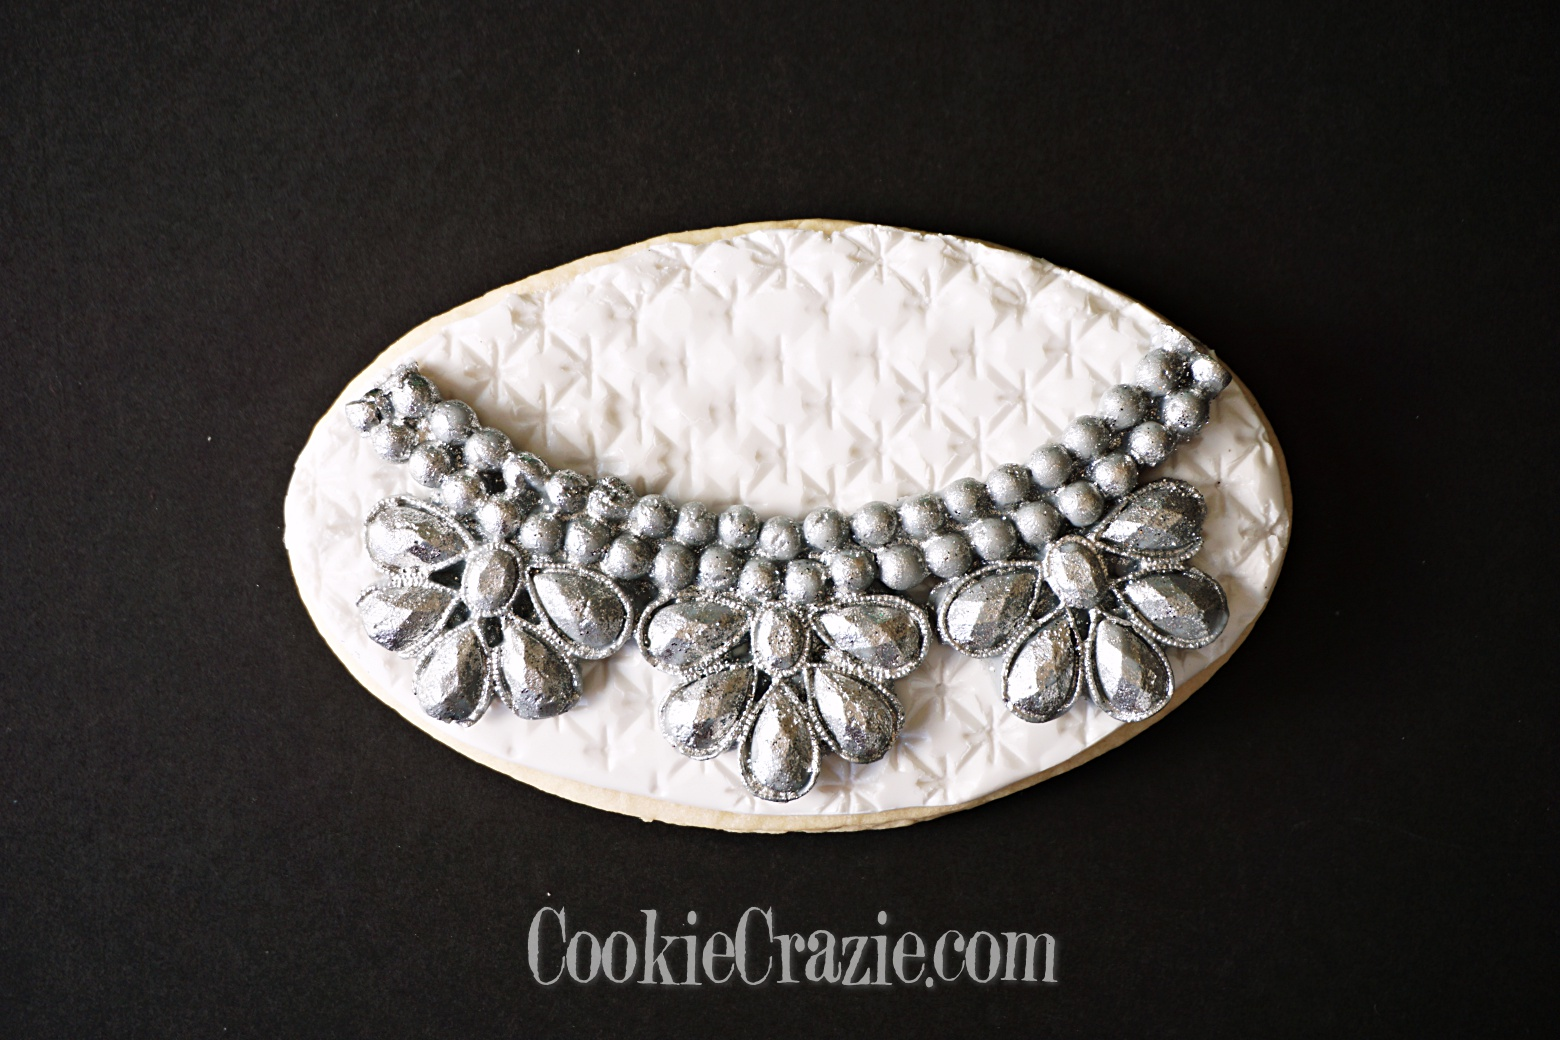 Silver Jewelry Decorated Sugar Cookie YouTube video  HERE